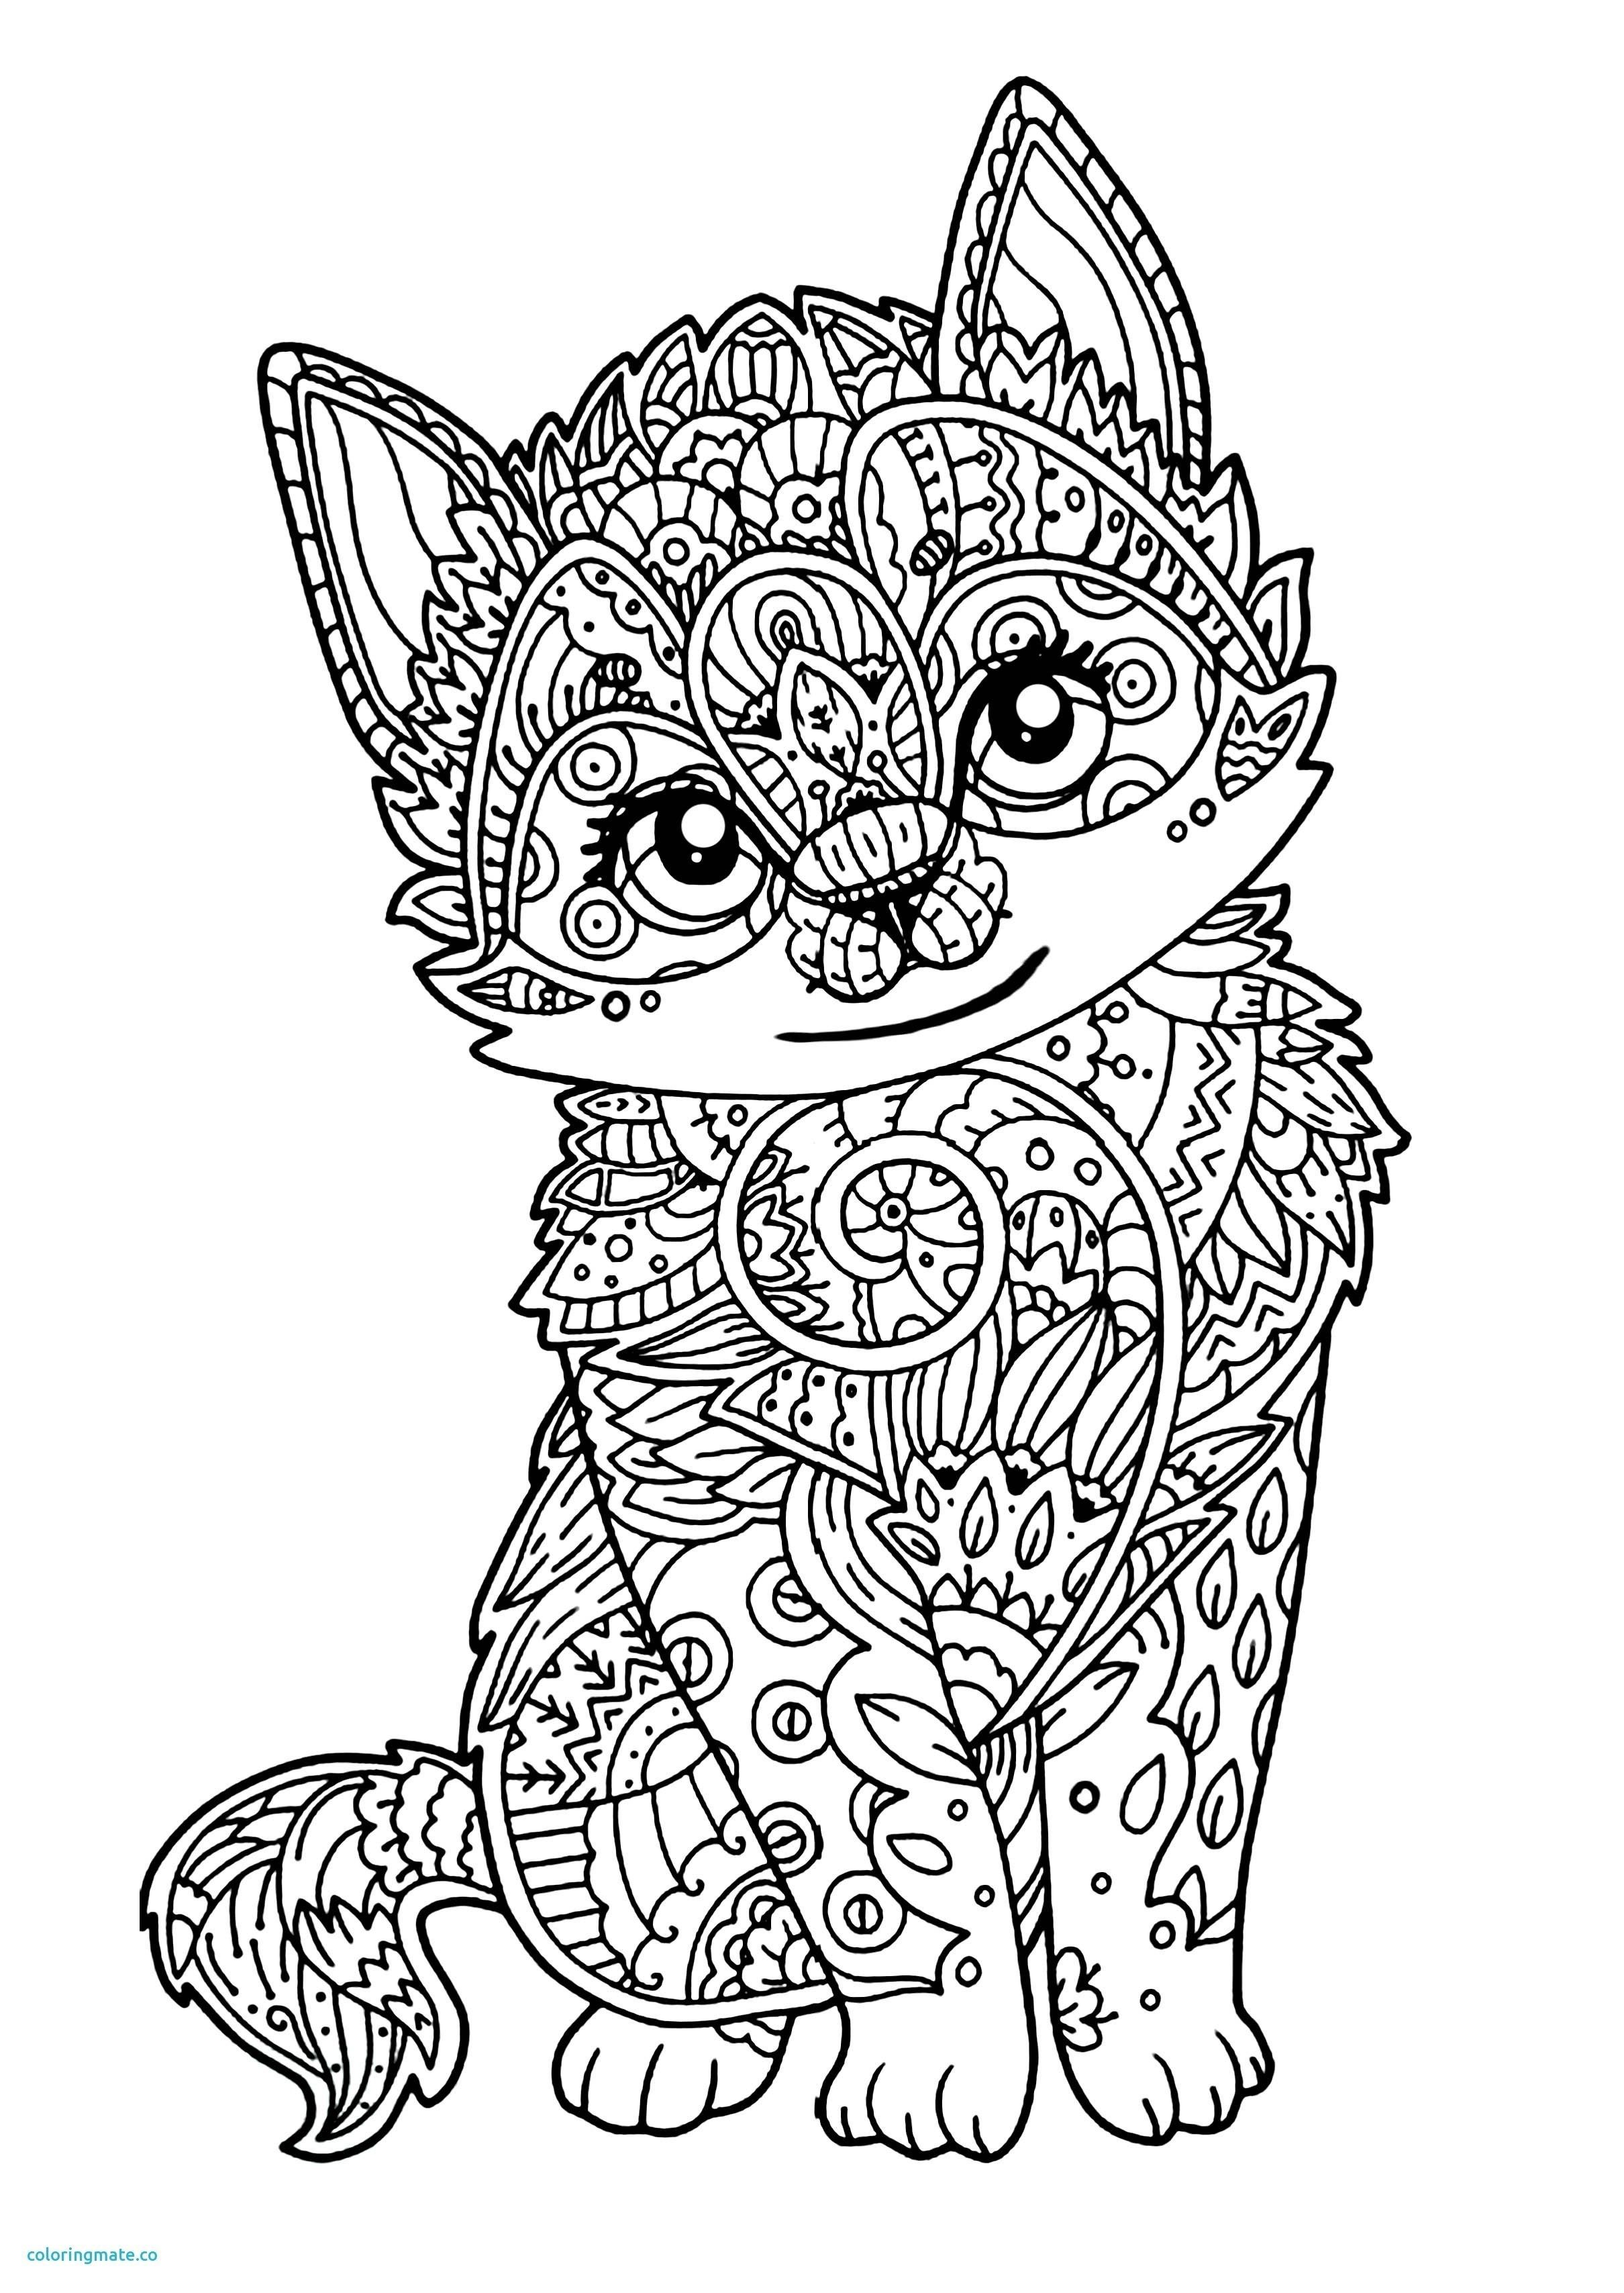 Pin on ** Coloriages